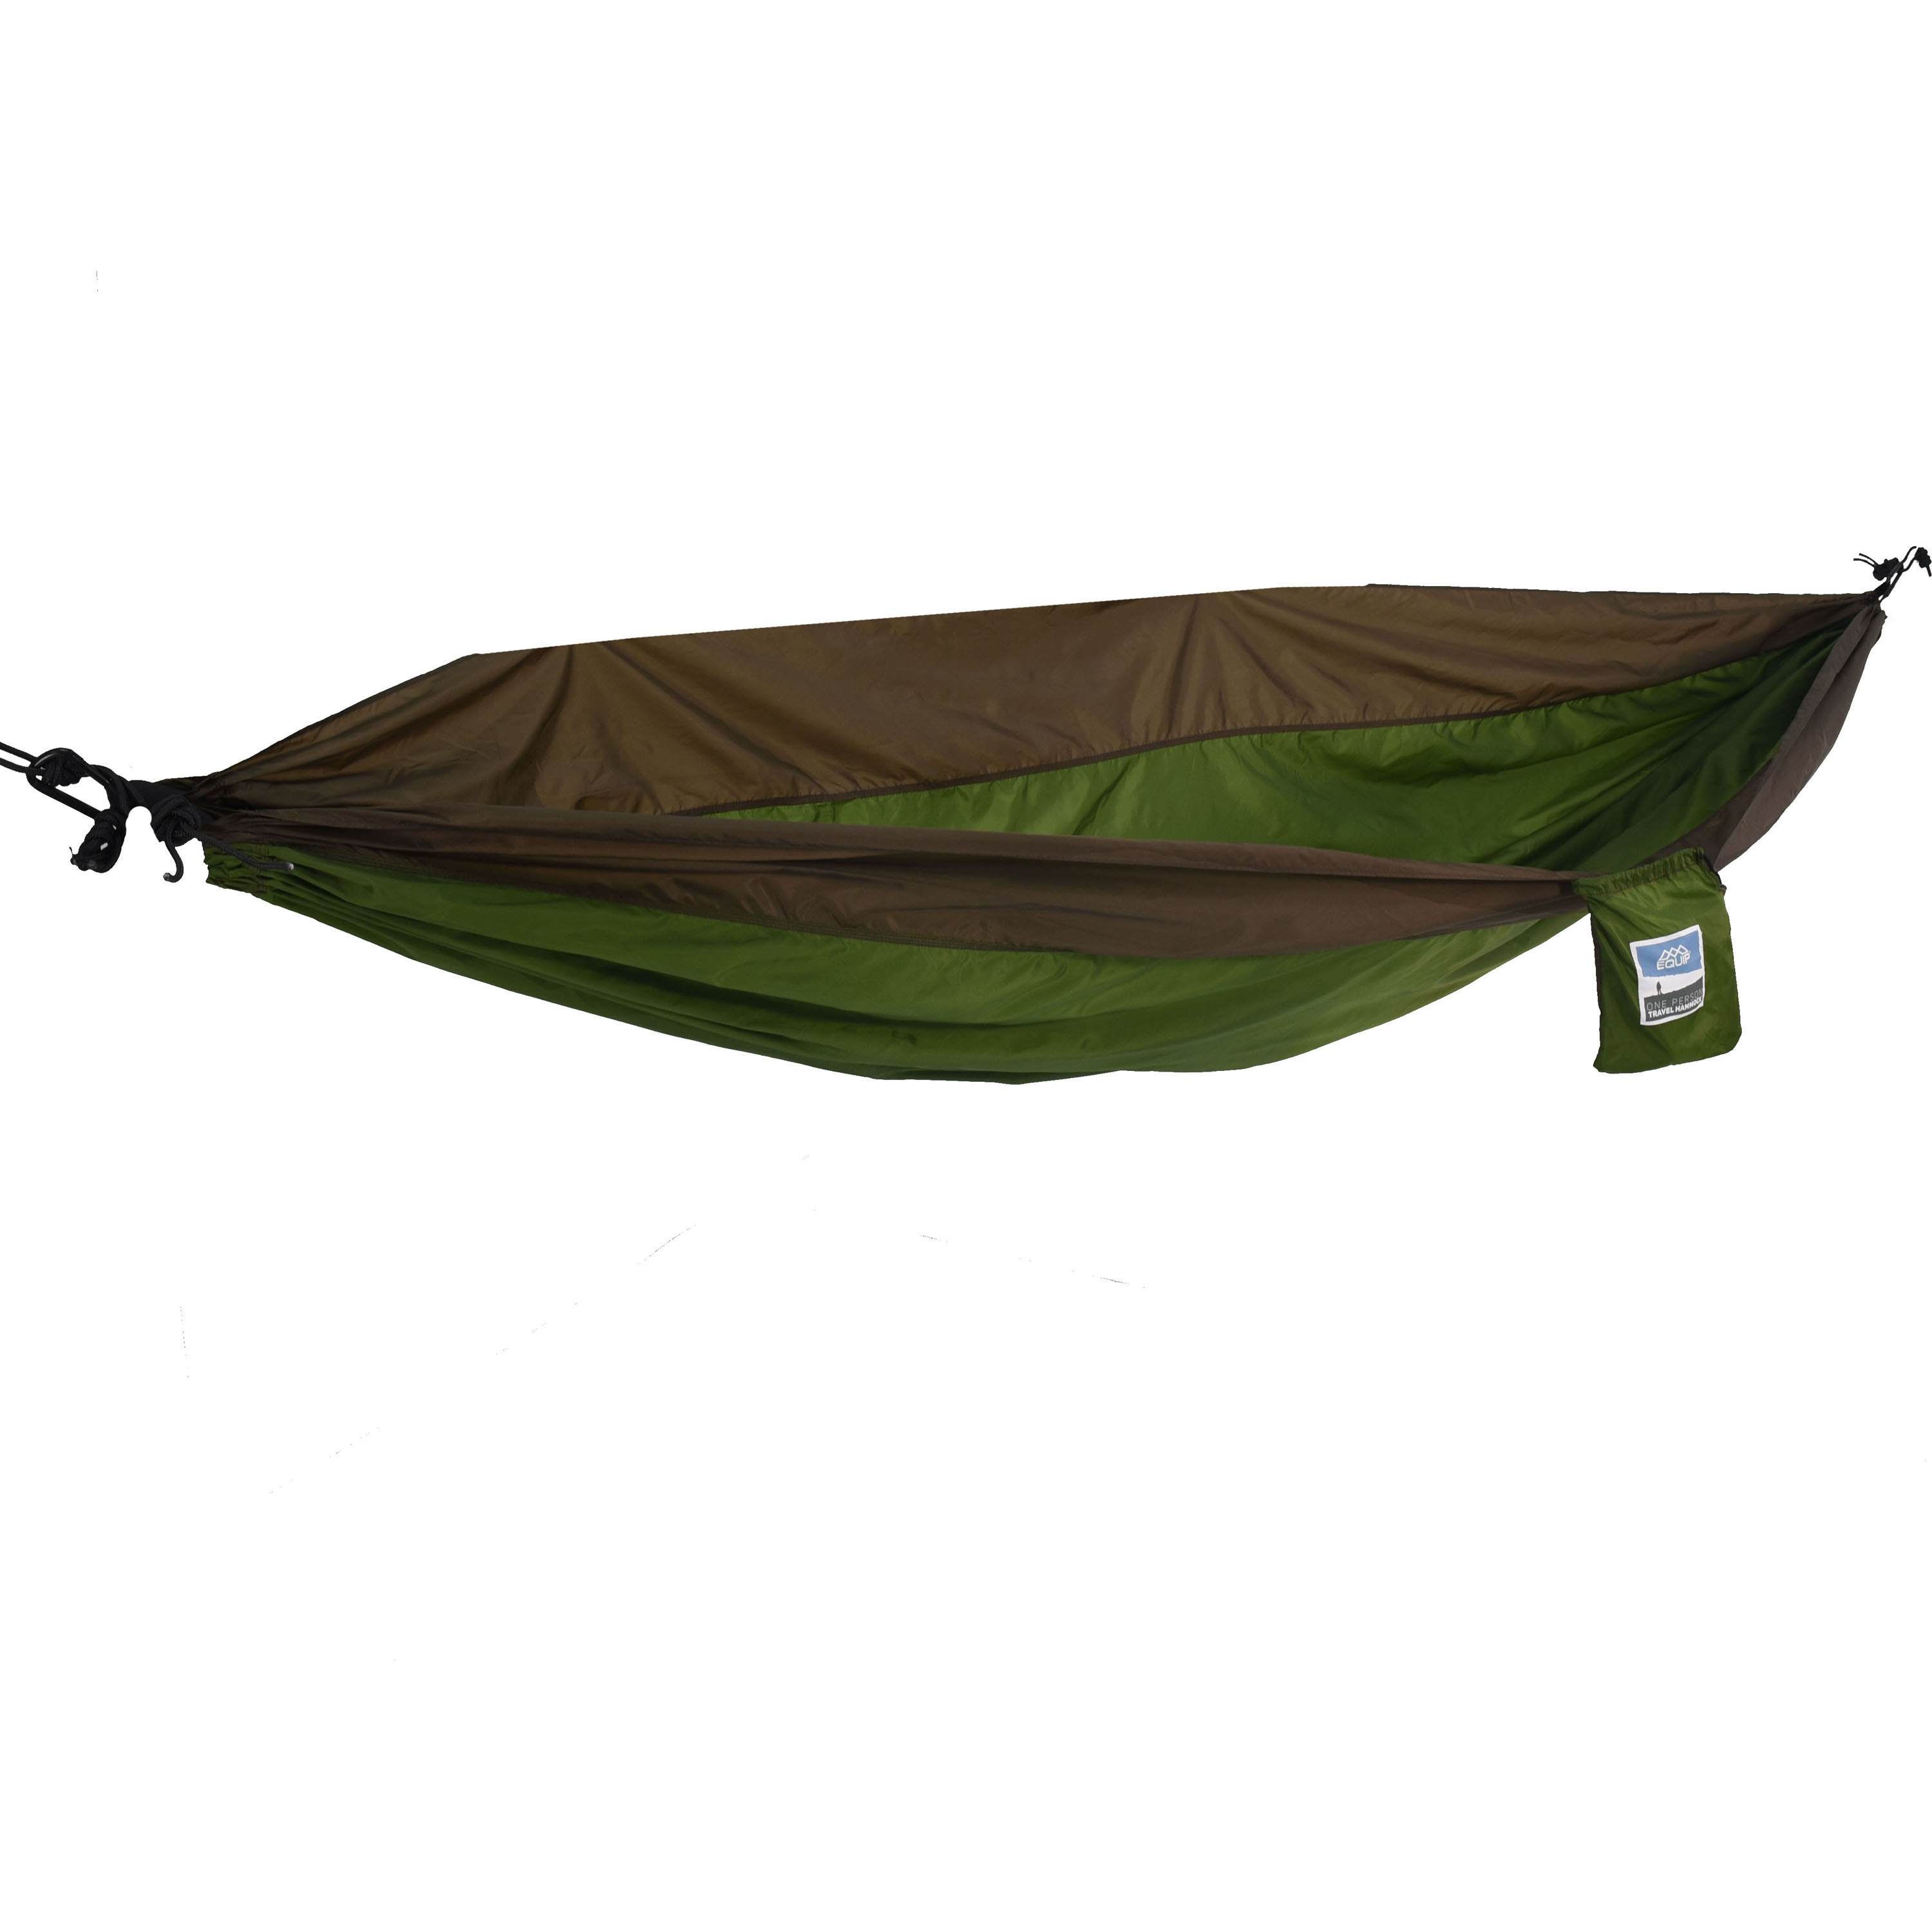 Equip 1-Person Durable Nylon Portable Hammock for Camping, Hiking, Backpacking, Travel, Includes Hanging Kit, by Generic